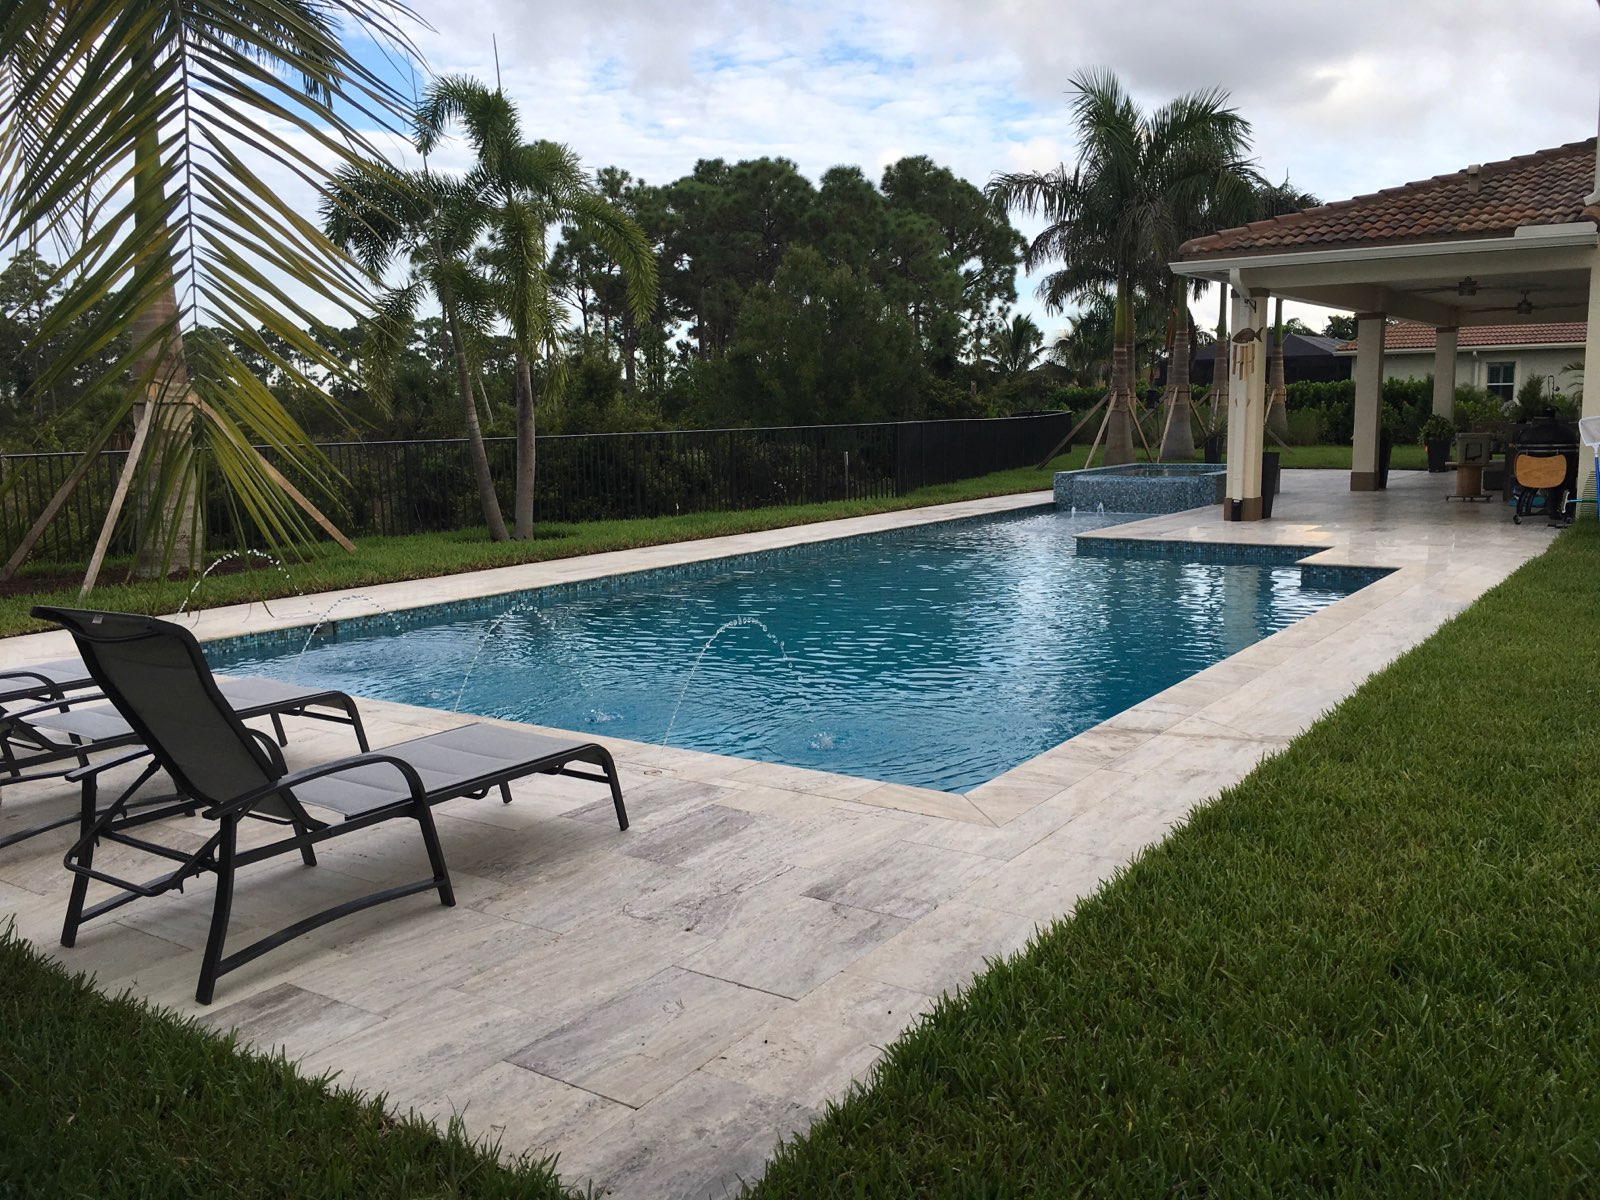 rhr pools of jupiter fl classically shaped pool with raised spa and water features